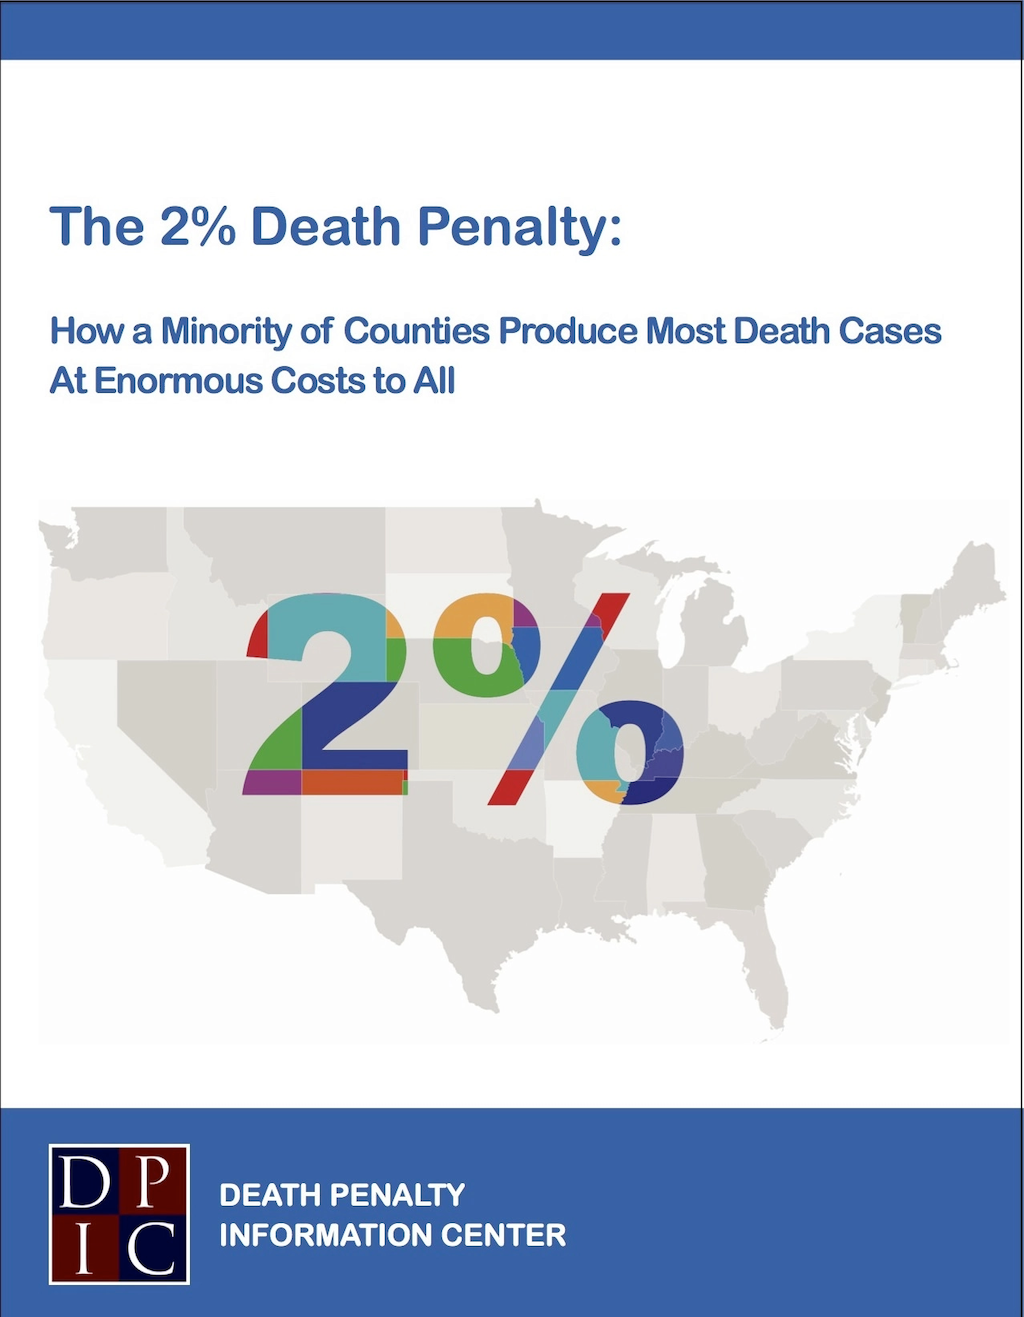 The 2% Death Penalty: How a Minority of Counties Produce Most Death Cases at Enormous Costs to All